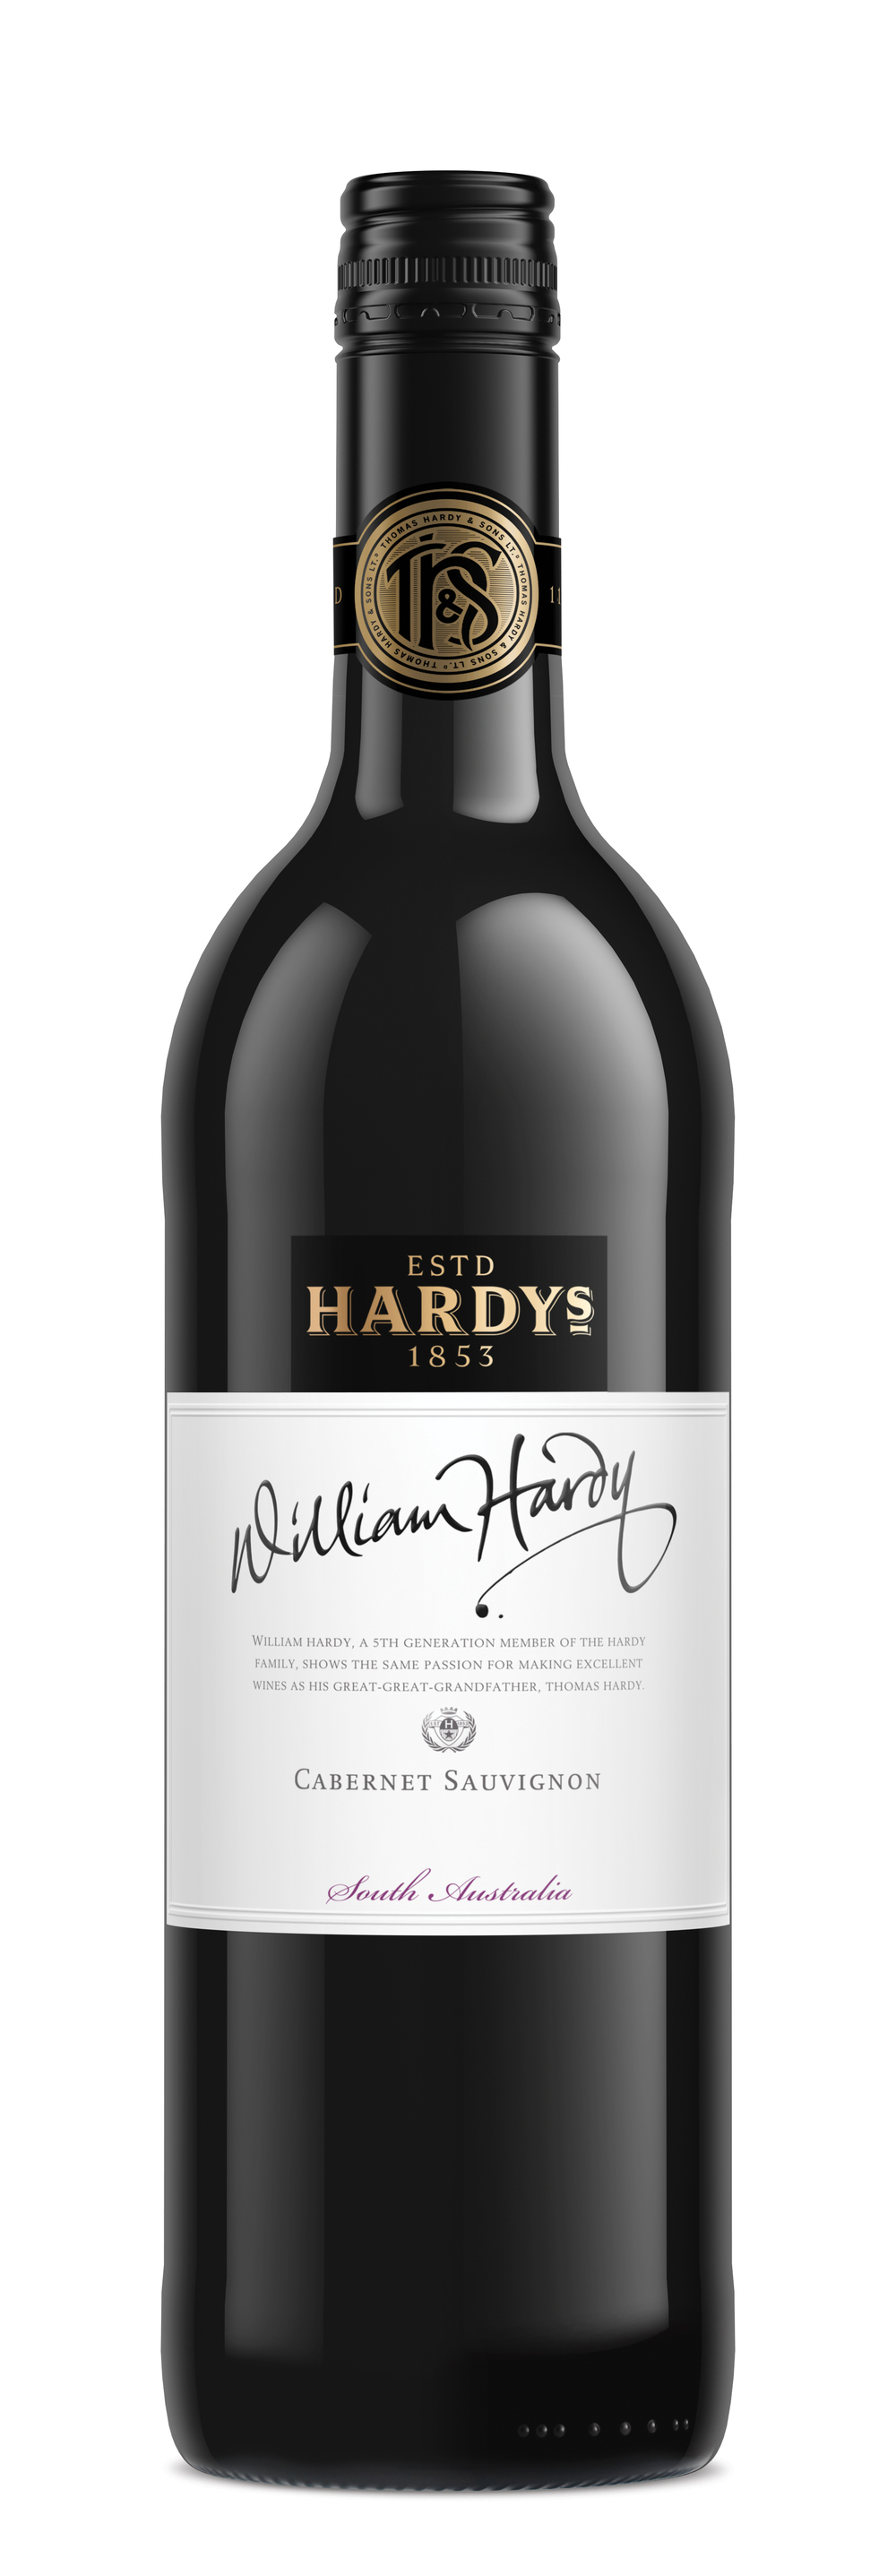 The William Hardy Cabernet Sauvignon 2013